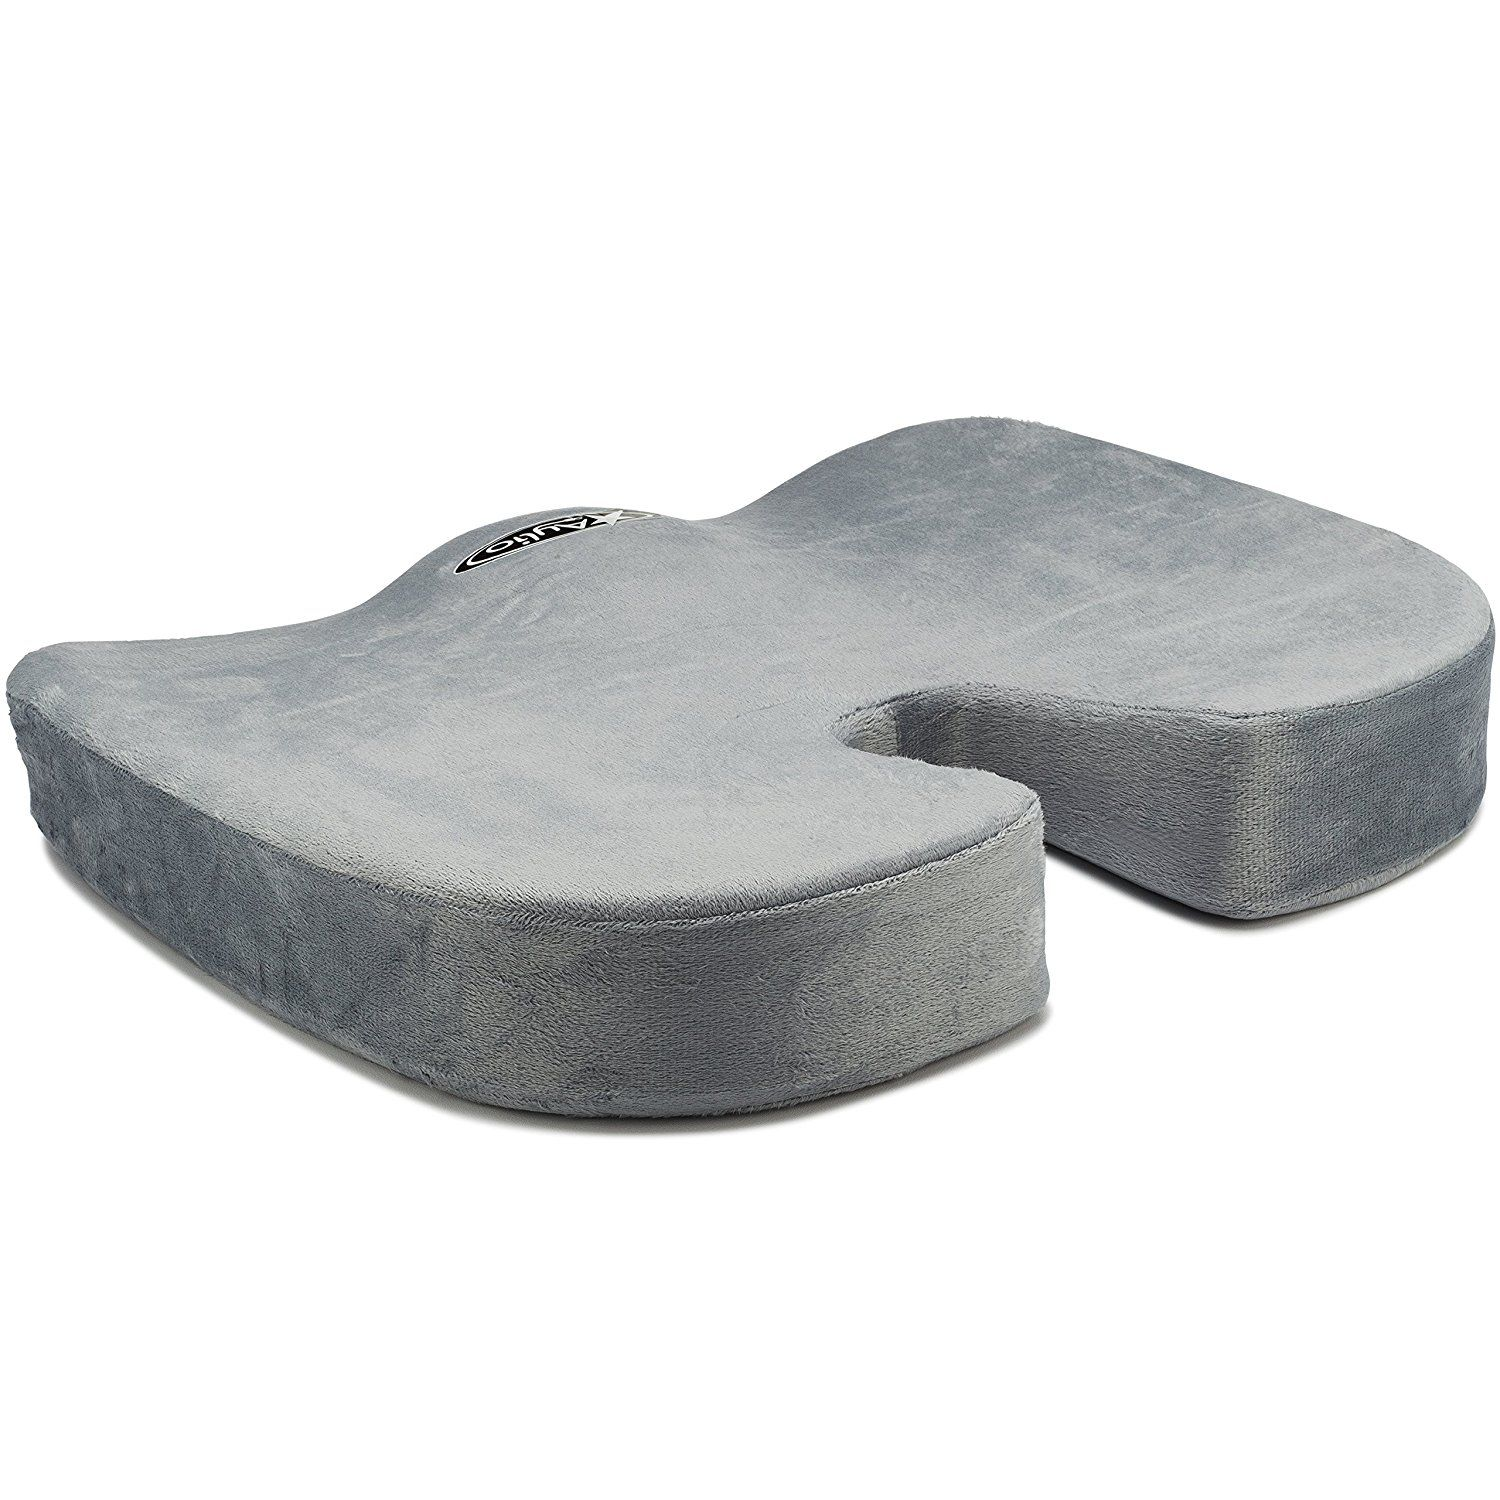 The Best Coccyx Cushion For Tail Bone Pain Supporting Family And